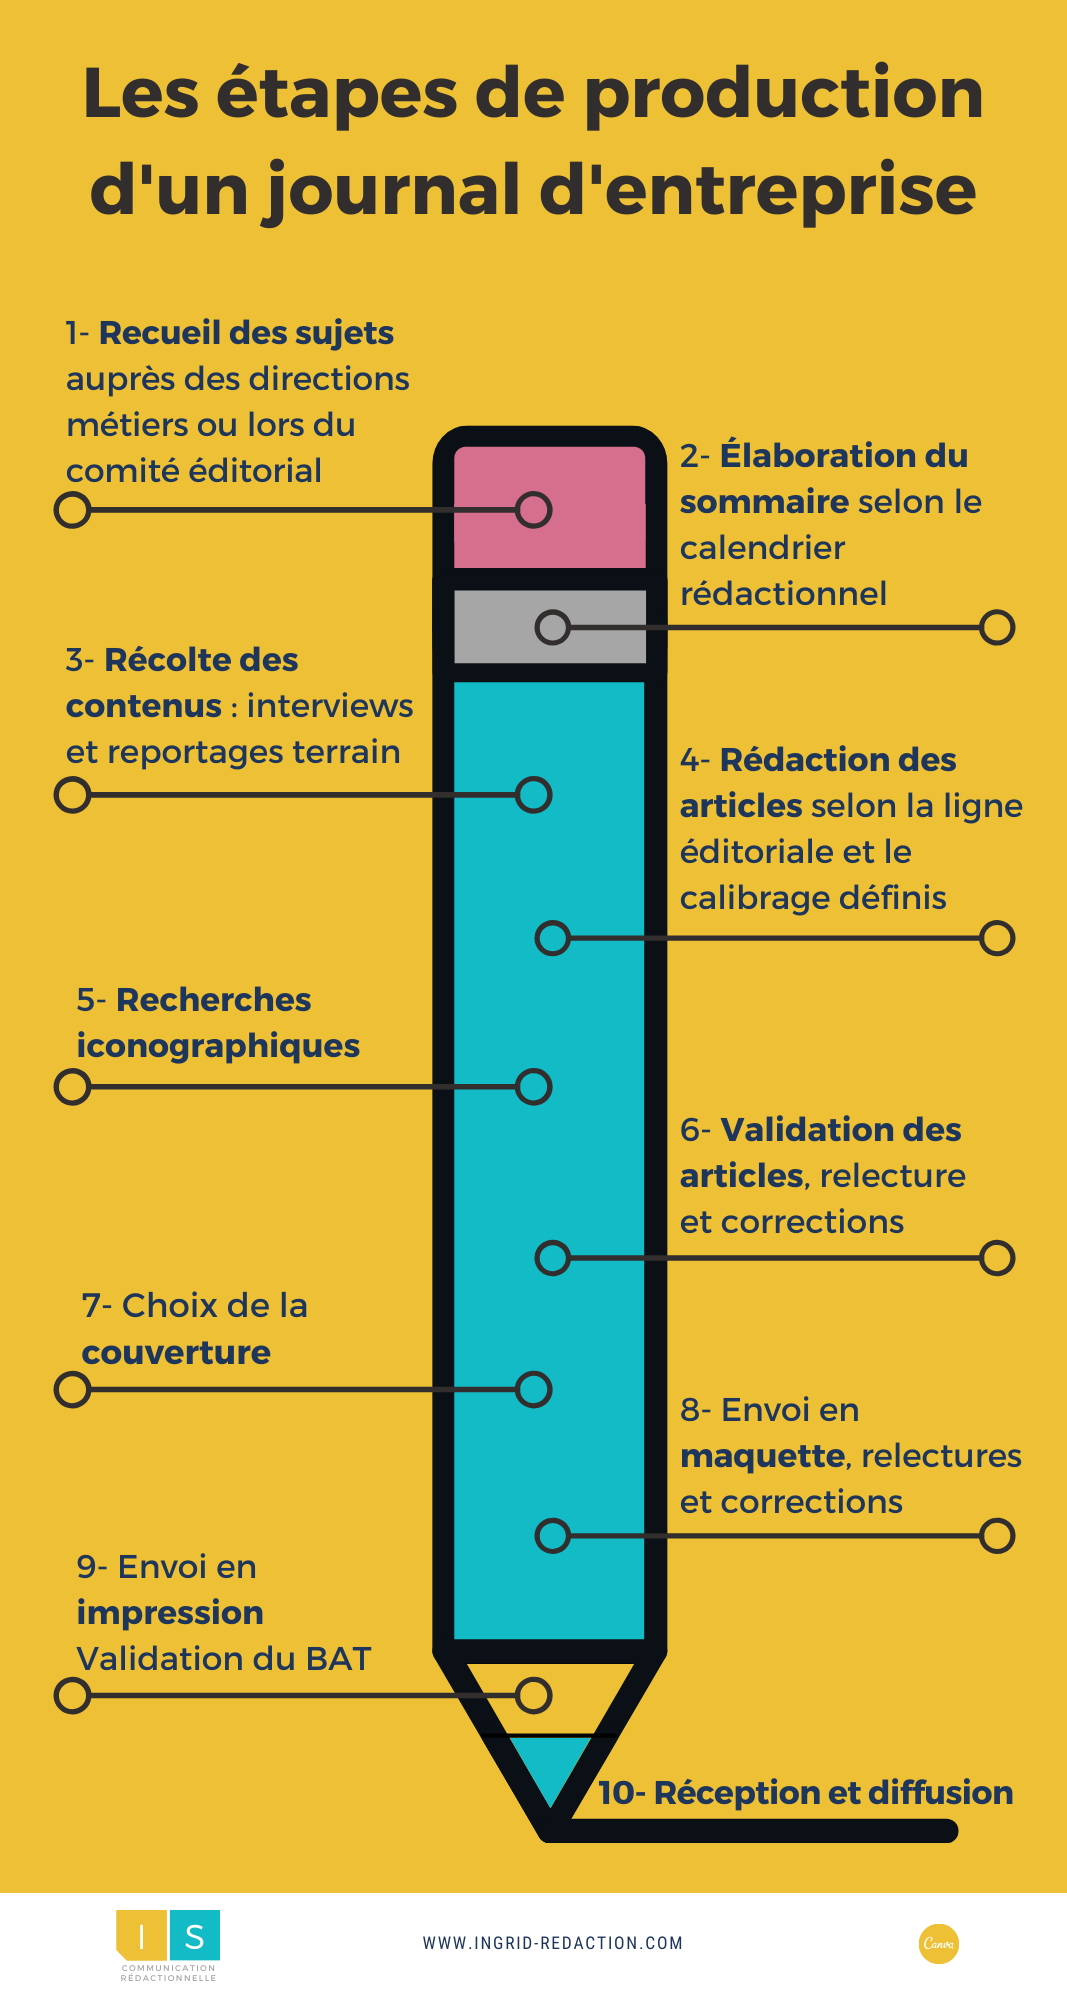 process production journal d'entreprise